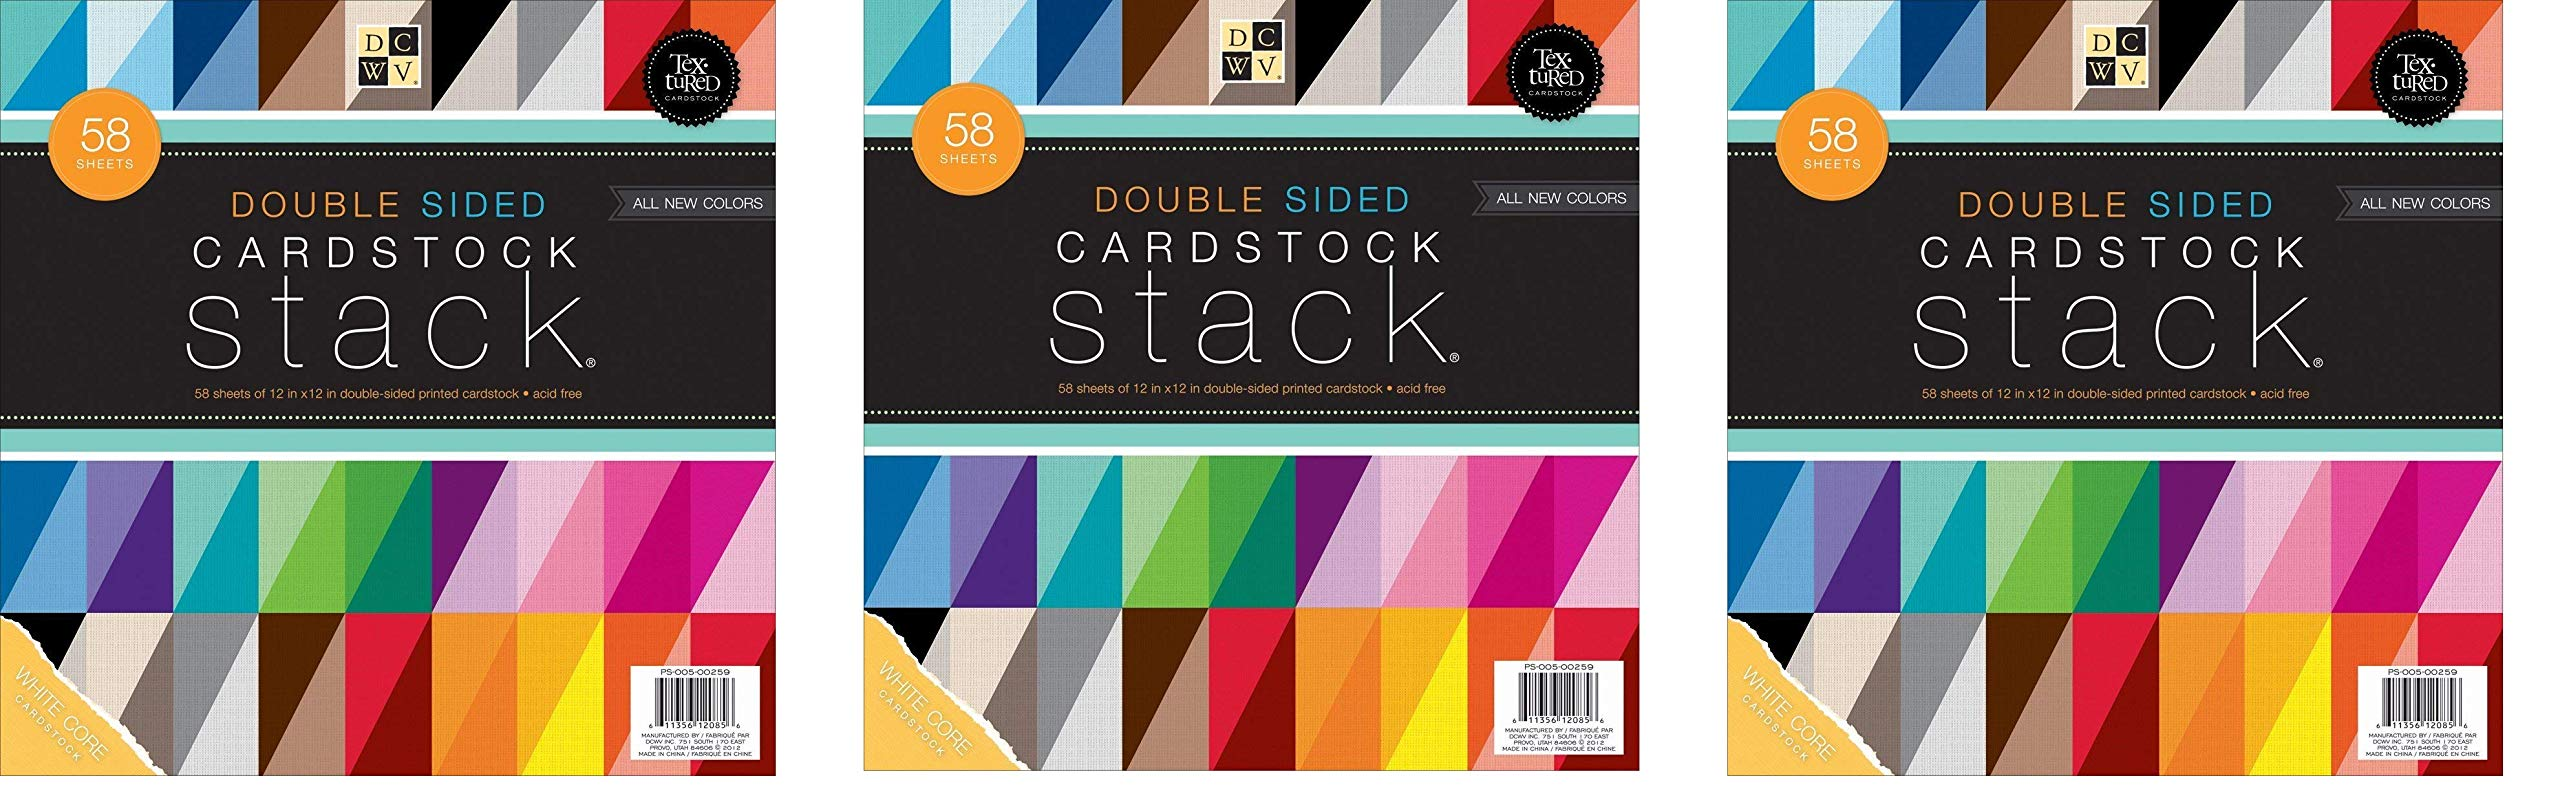 DCWV Double Sided Cardstock Stack, Textured, 58 Sheets, 12 x 12 inches (3-Pack, Basic Color)